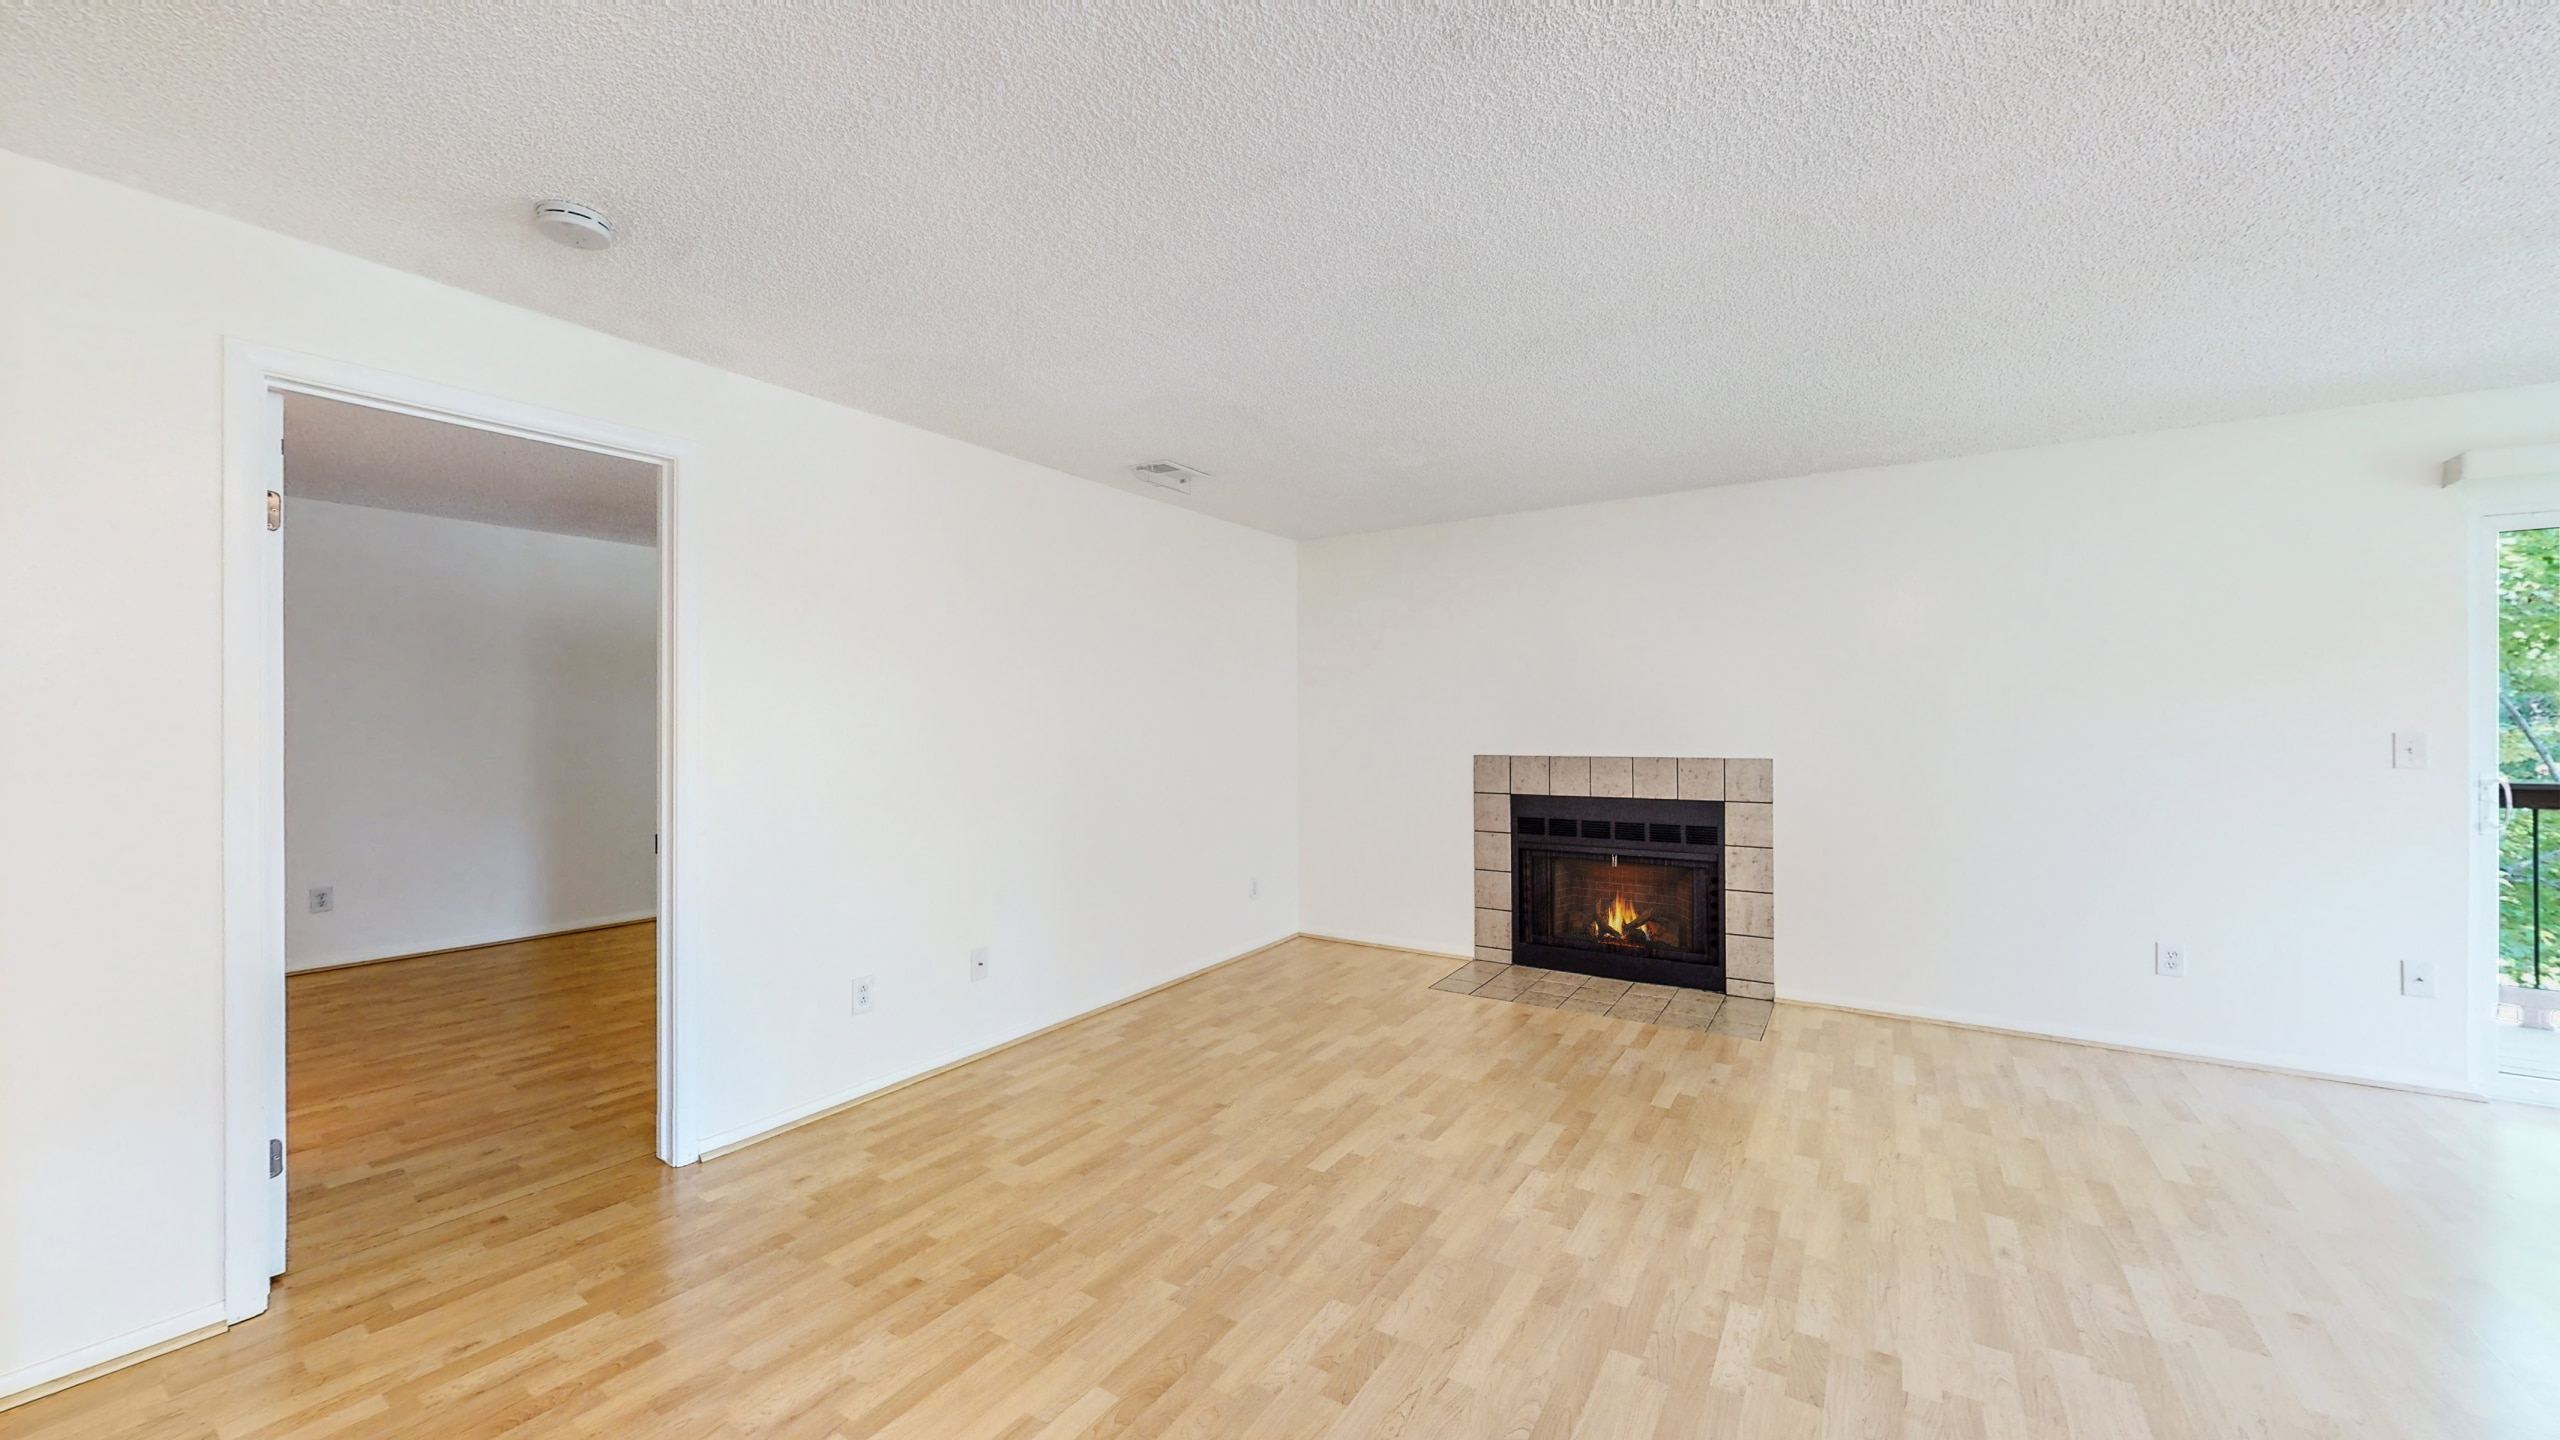 Living Room with wood floors, white walls, condo at Spinnaker Run II